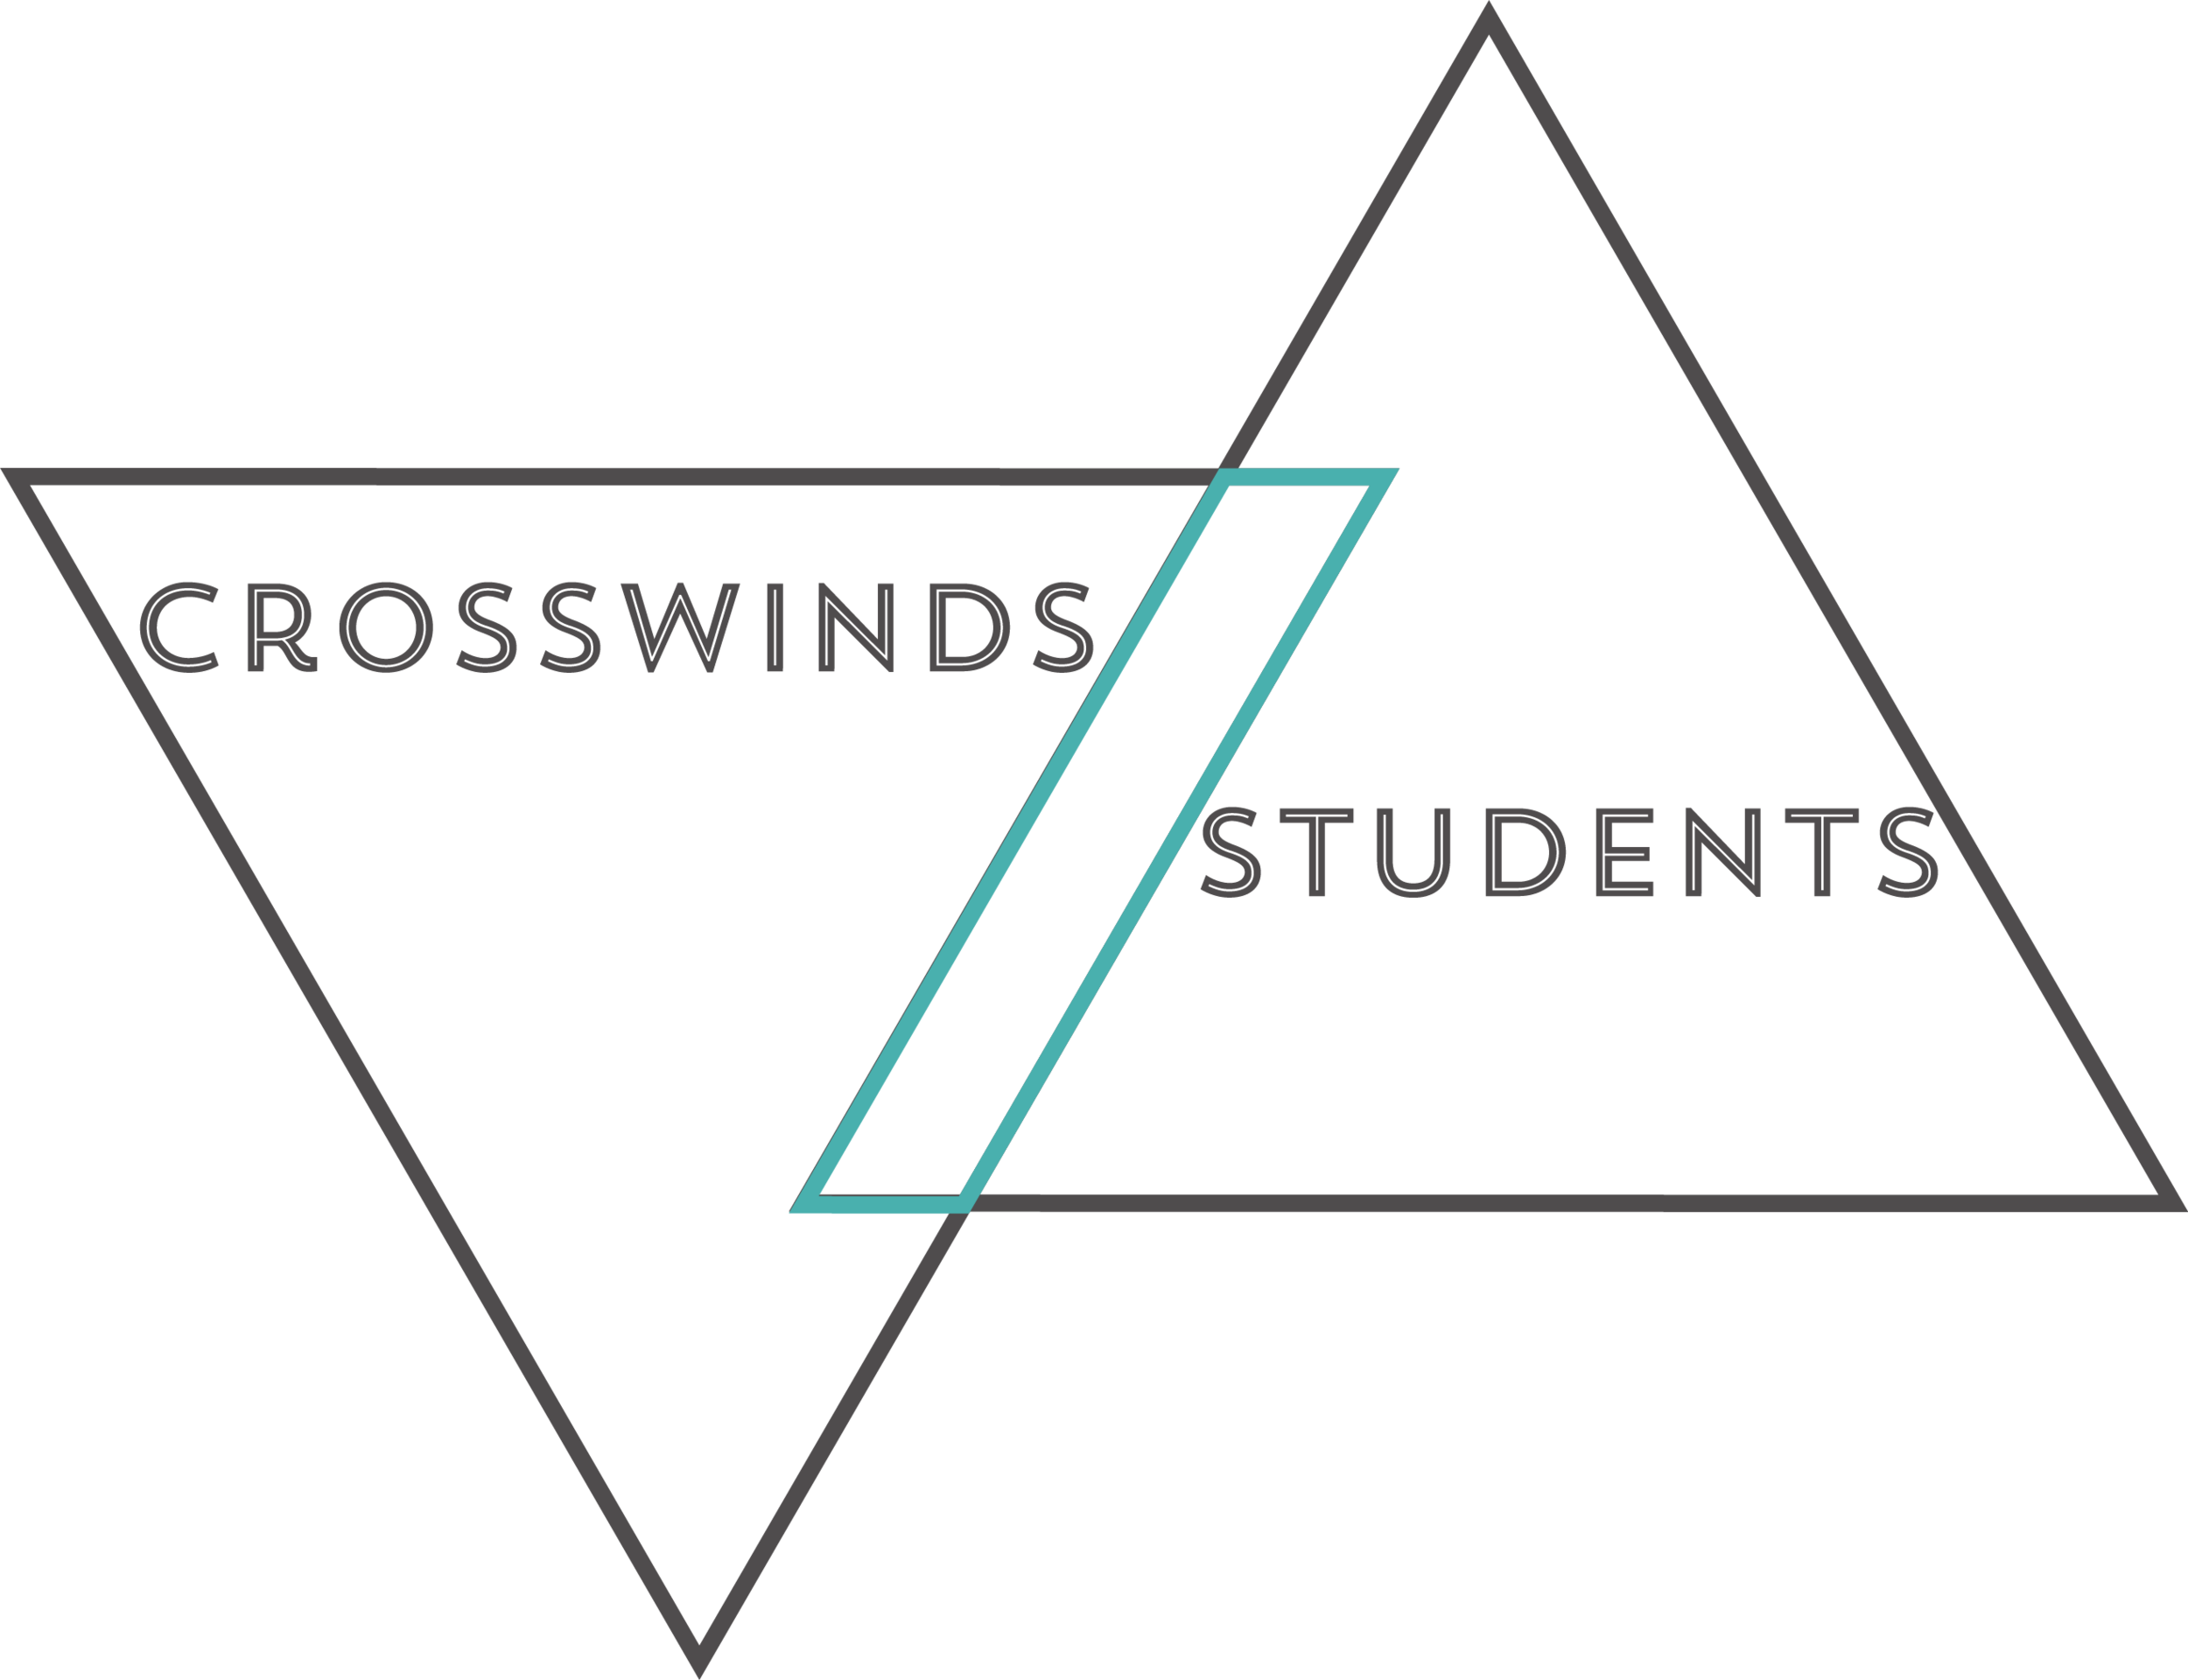 STUDENT MINISTRY LOGO.png